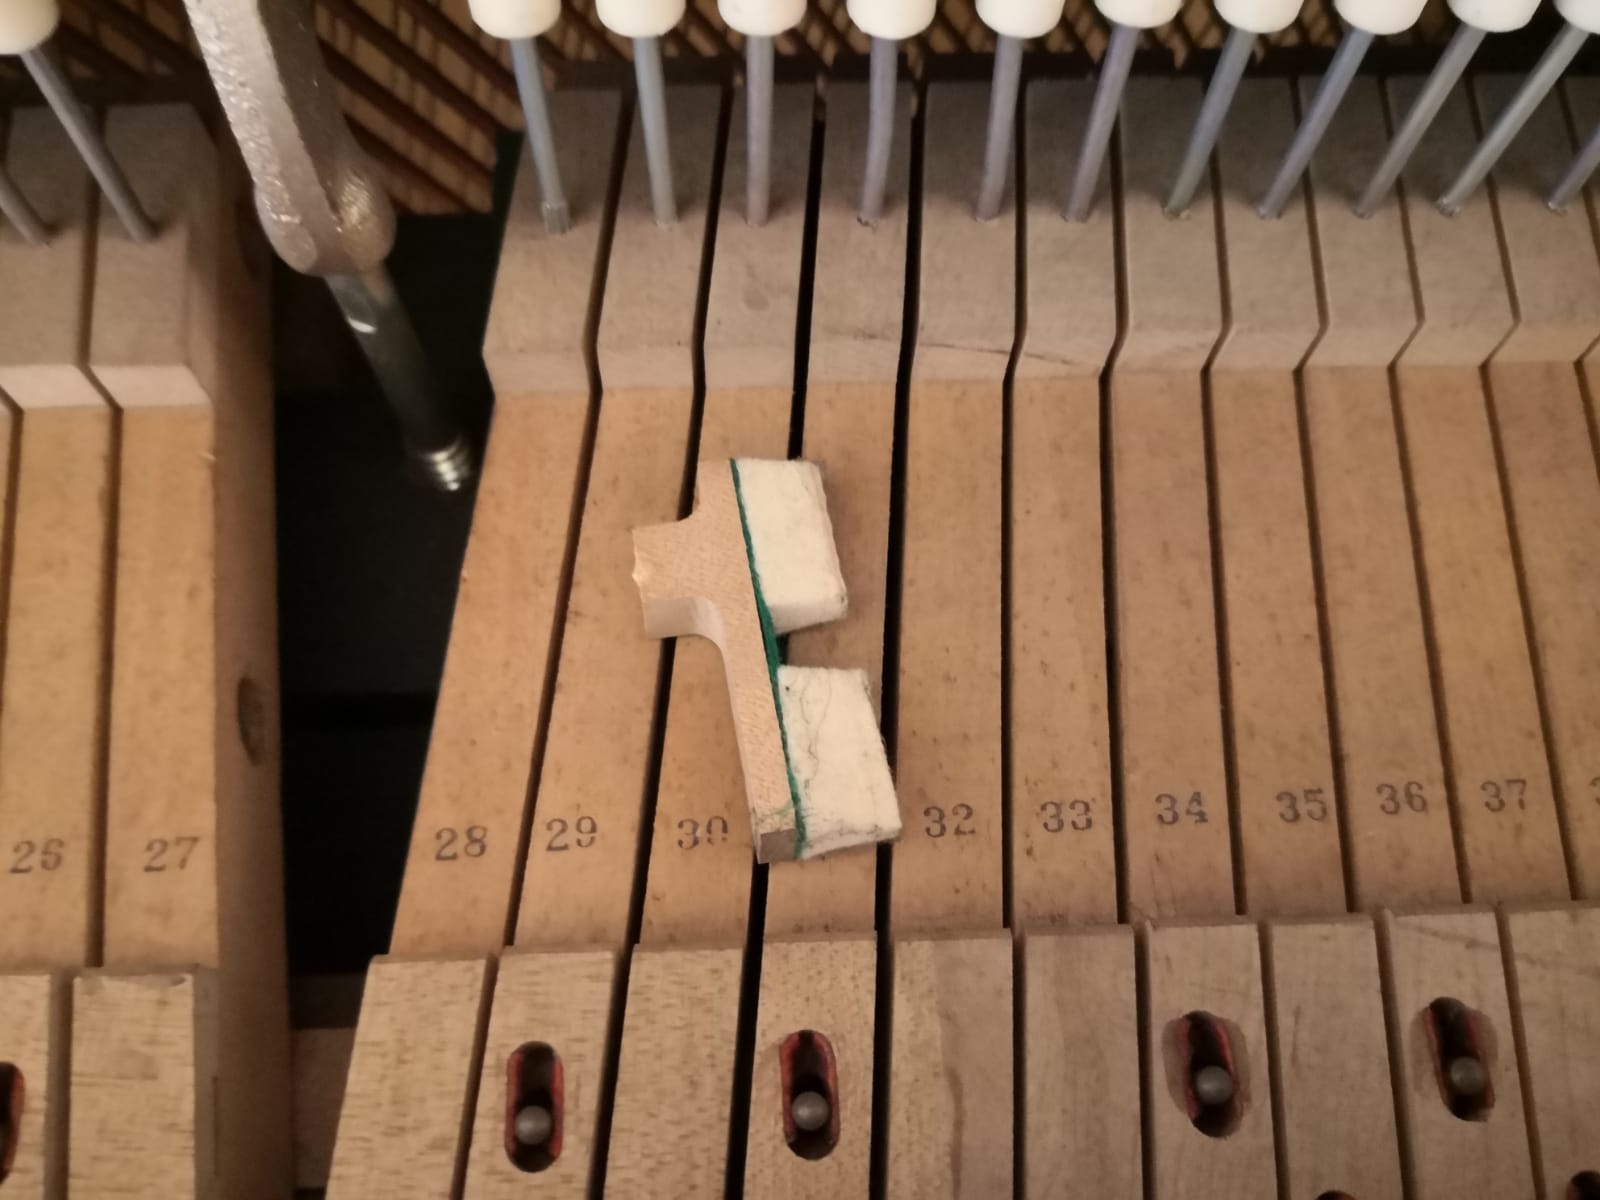 Sydney Piano Key Repair